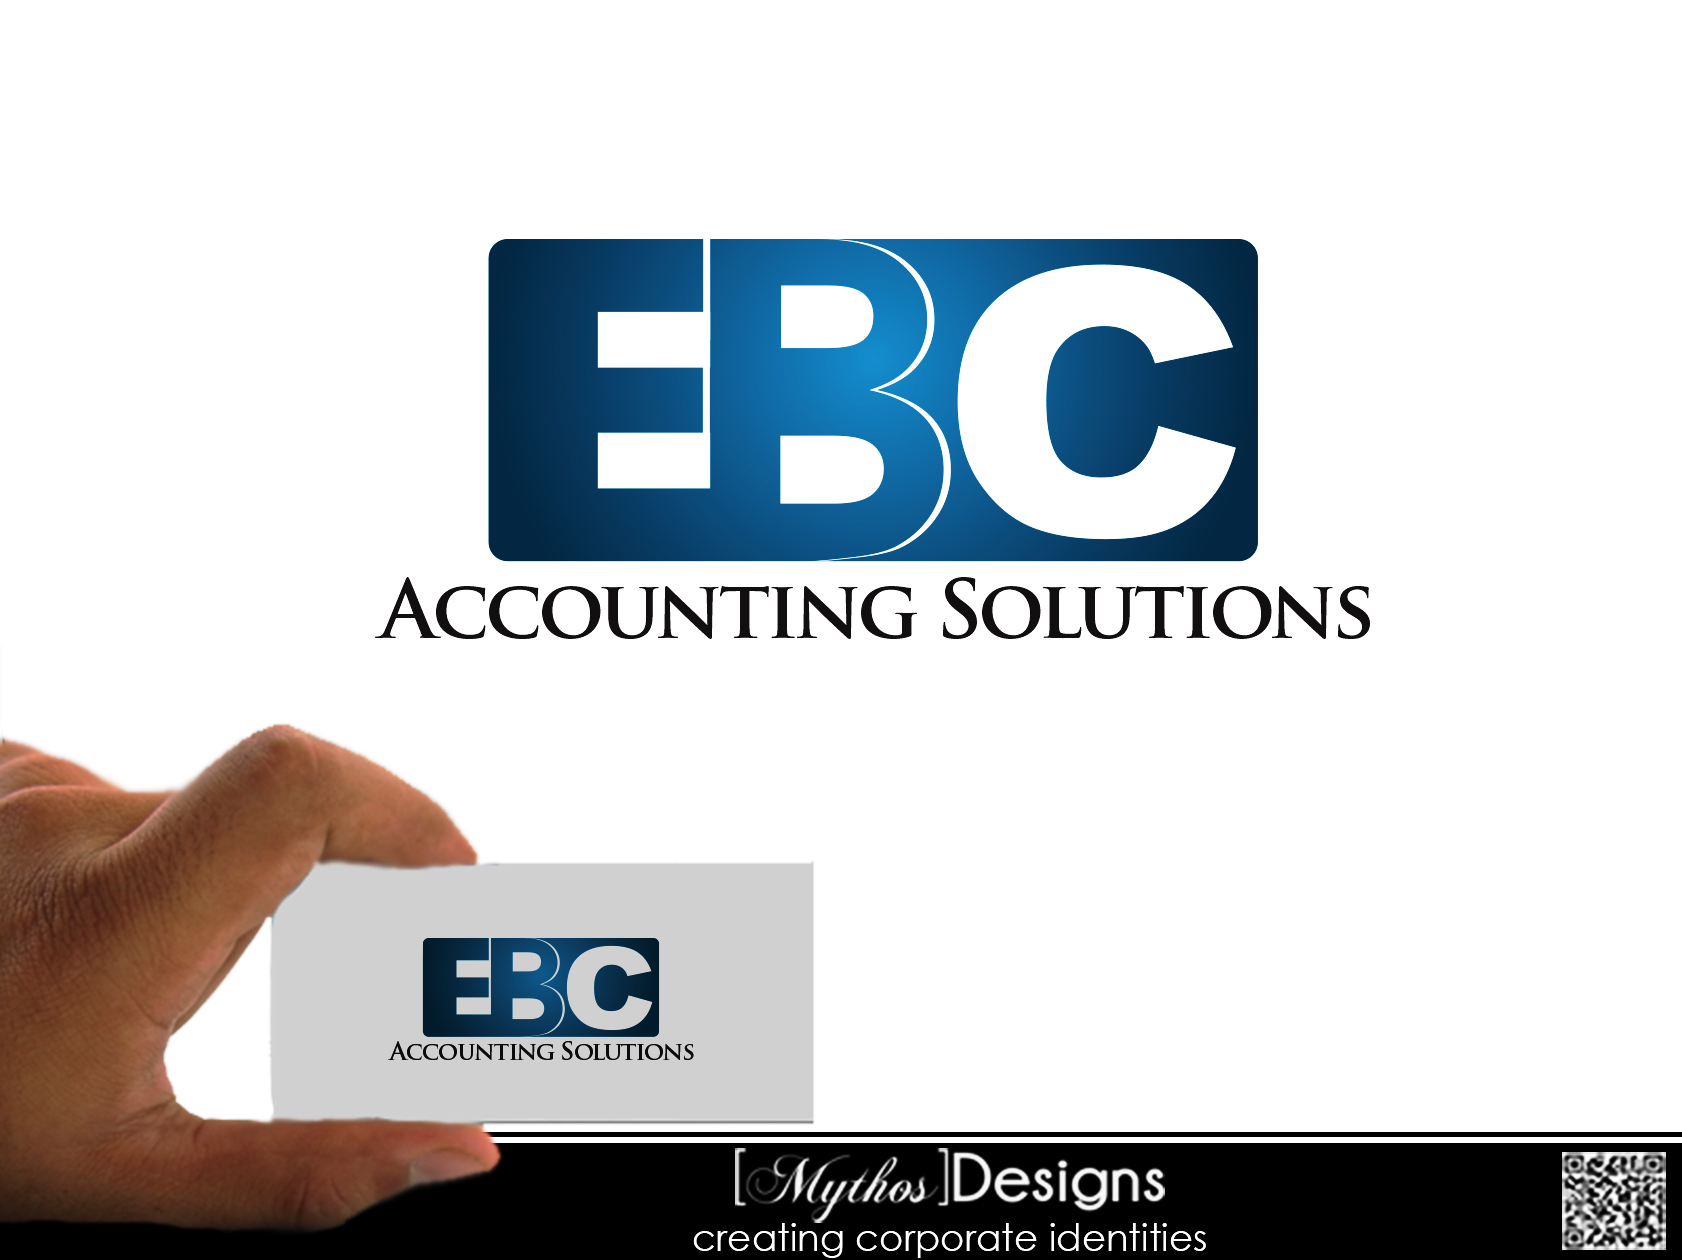 Logo Design by Mythos Designs - Entry No. 23 in the Logo Design Contest New Logo Design for EBC Accounting Solutions.